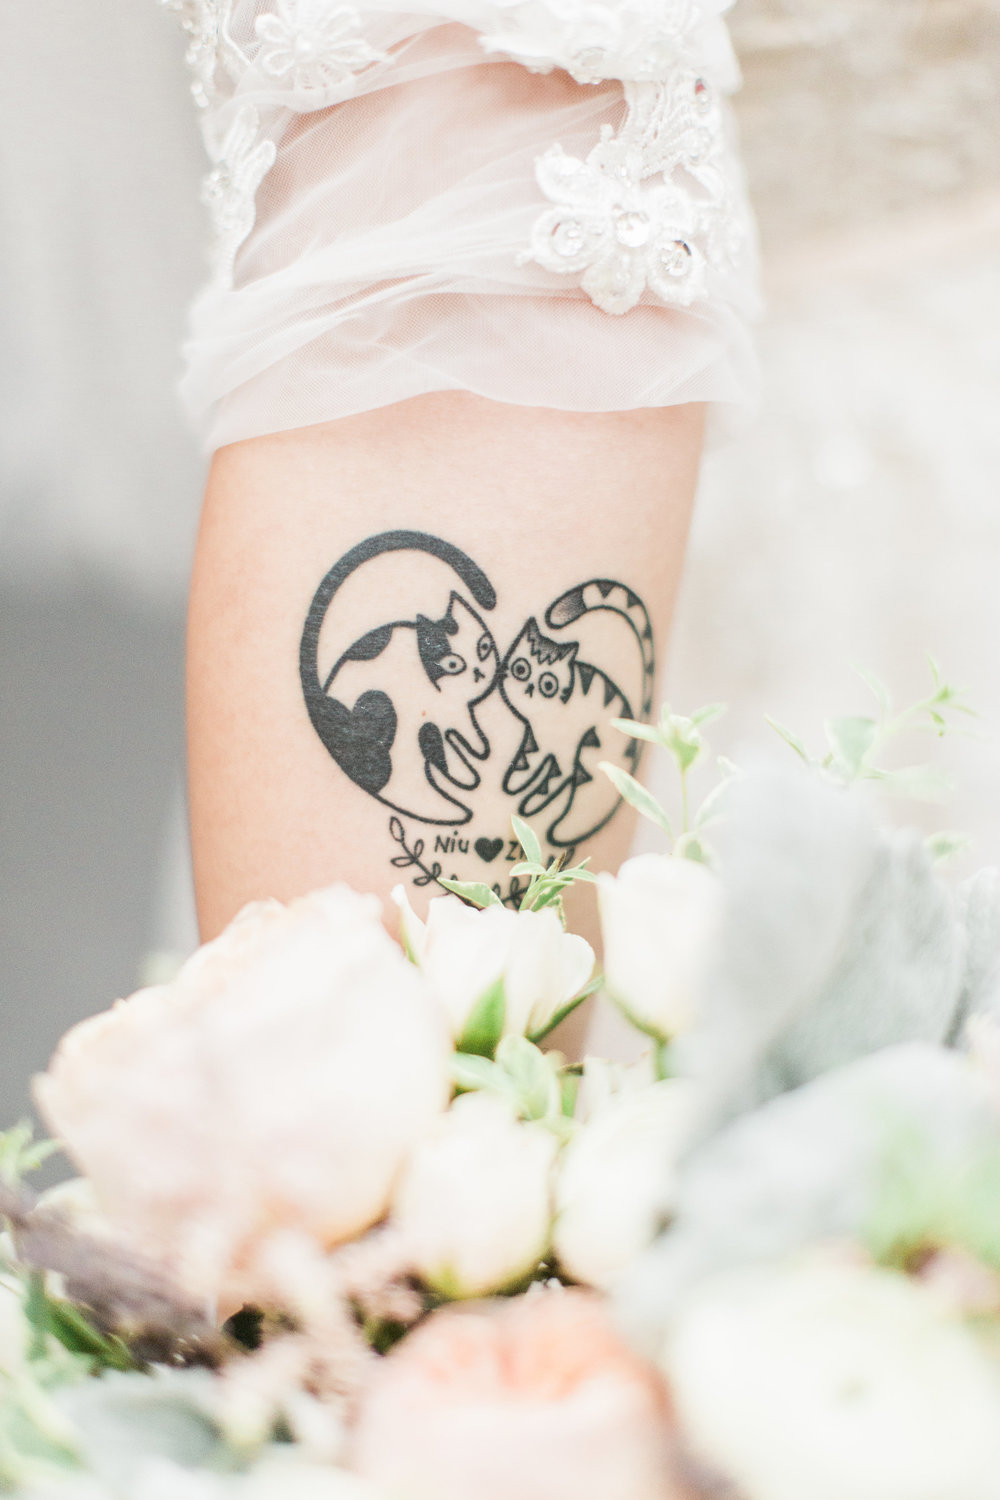 cat-tattoo-cat-lover-wedding-ivory-and-beau-savannah-wedding-planner-savannah-wedding-florist-savannah-event-designer-incorporate-cats-into-your-wedding-AptBPhotography_XiaoHang_BrideGroom111.JPG